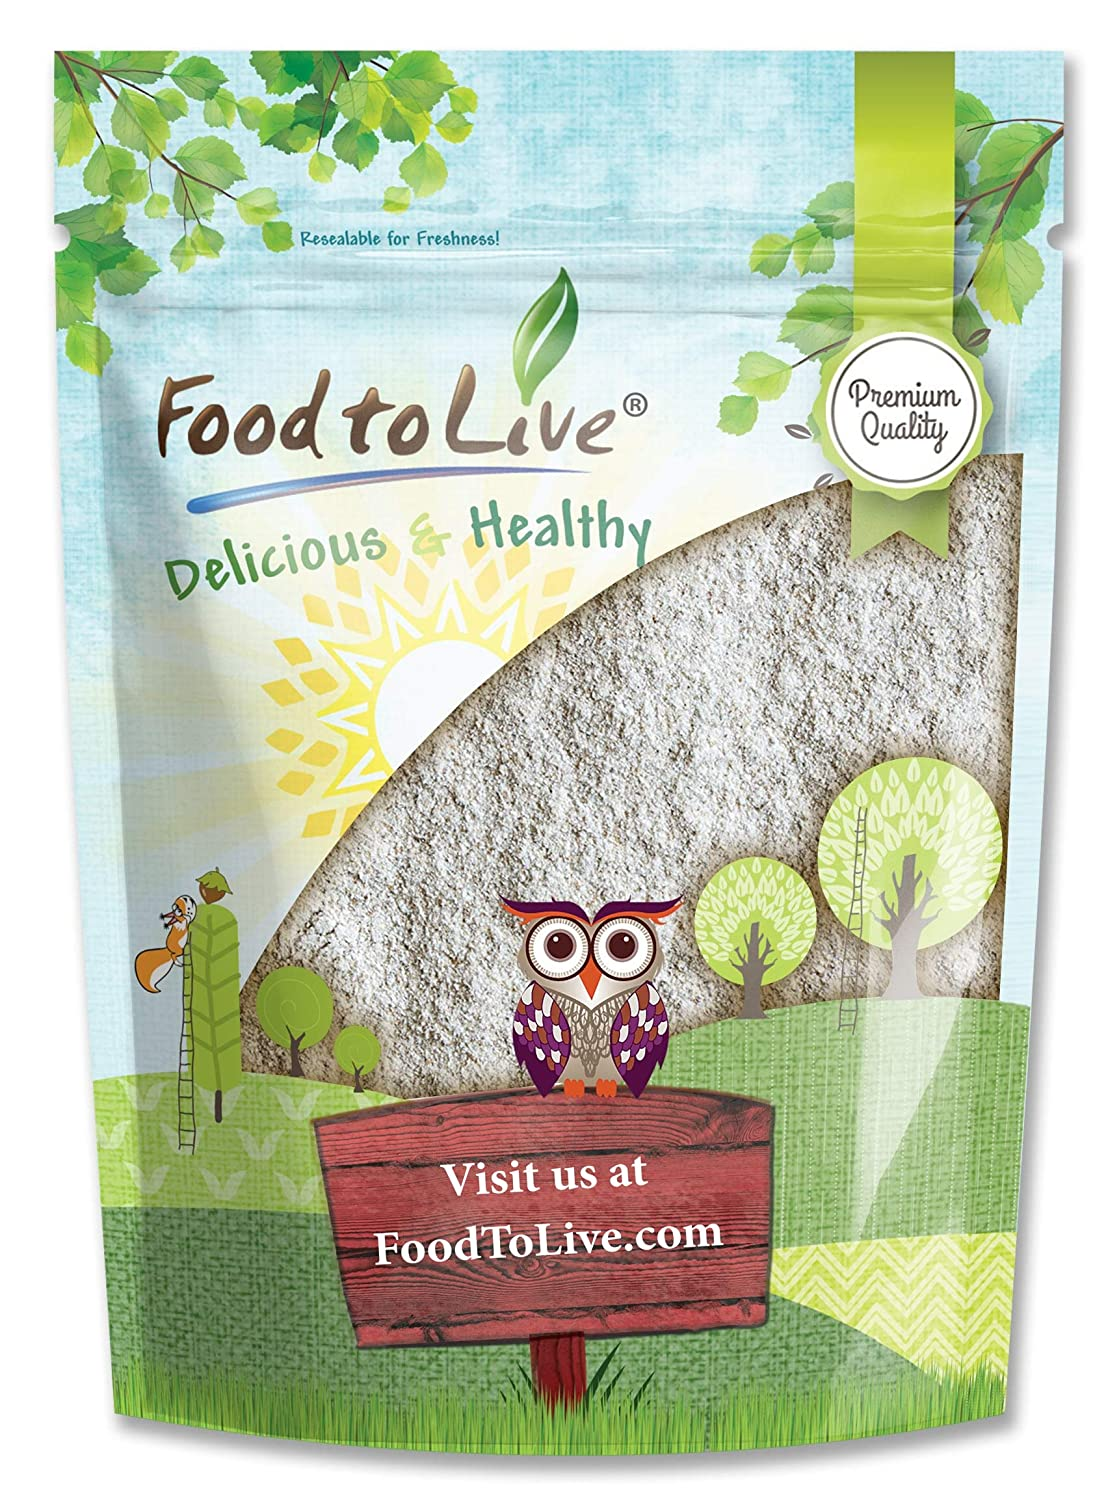 Rye Flour, 1 Pound - Stone Ground from Whole Grain Rye Berries, Kosher, Vegan, Bulk, Great for Bread Baking, Product of the USA